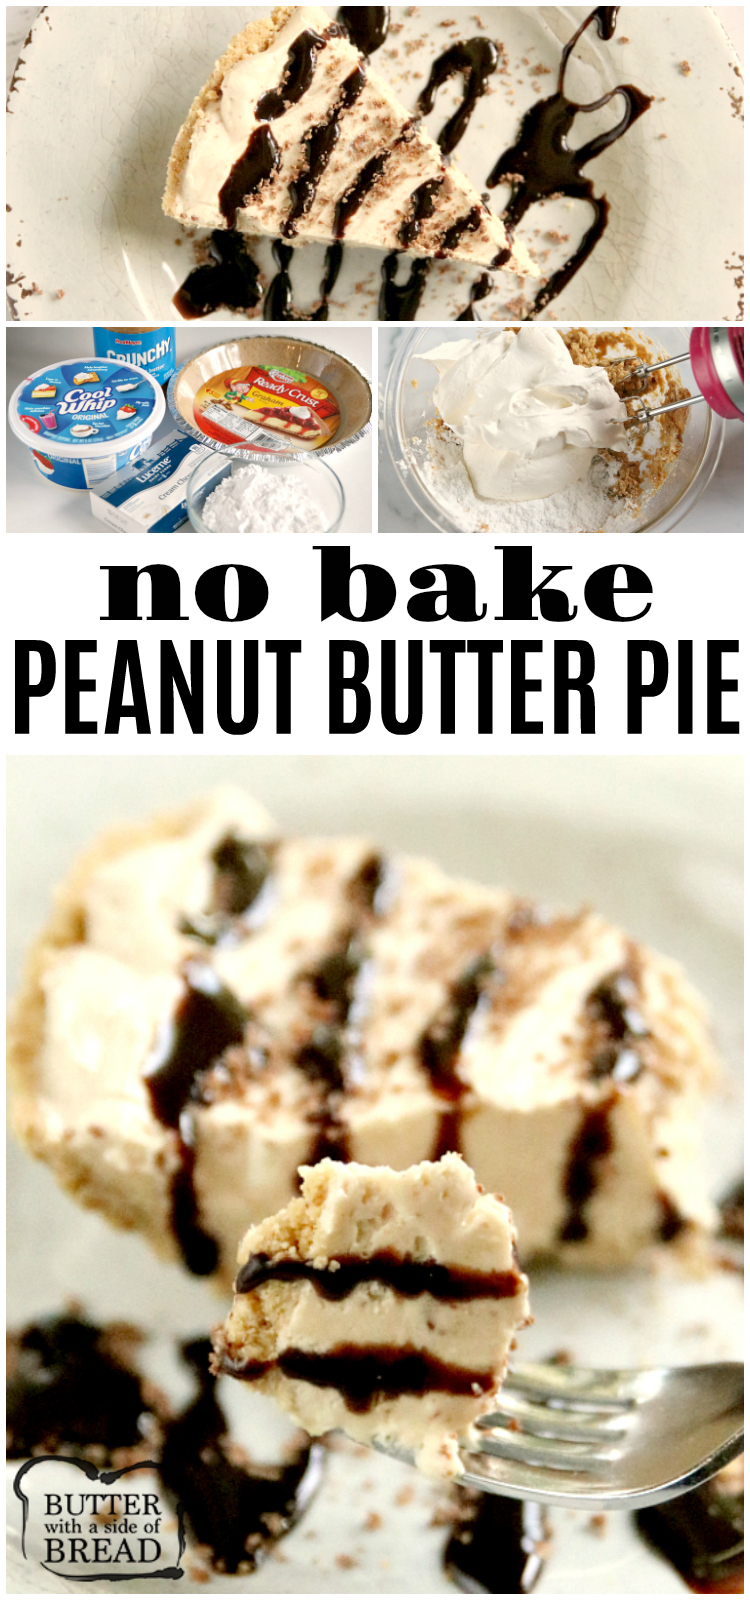 Frozen Peanut Butter Pie is cold, creamy and easy to make with only five ingredients! This no bake peanut butter pie recipe is a family favorite dessert that only takes a few minutes to make!